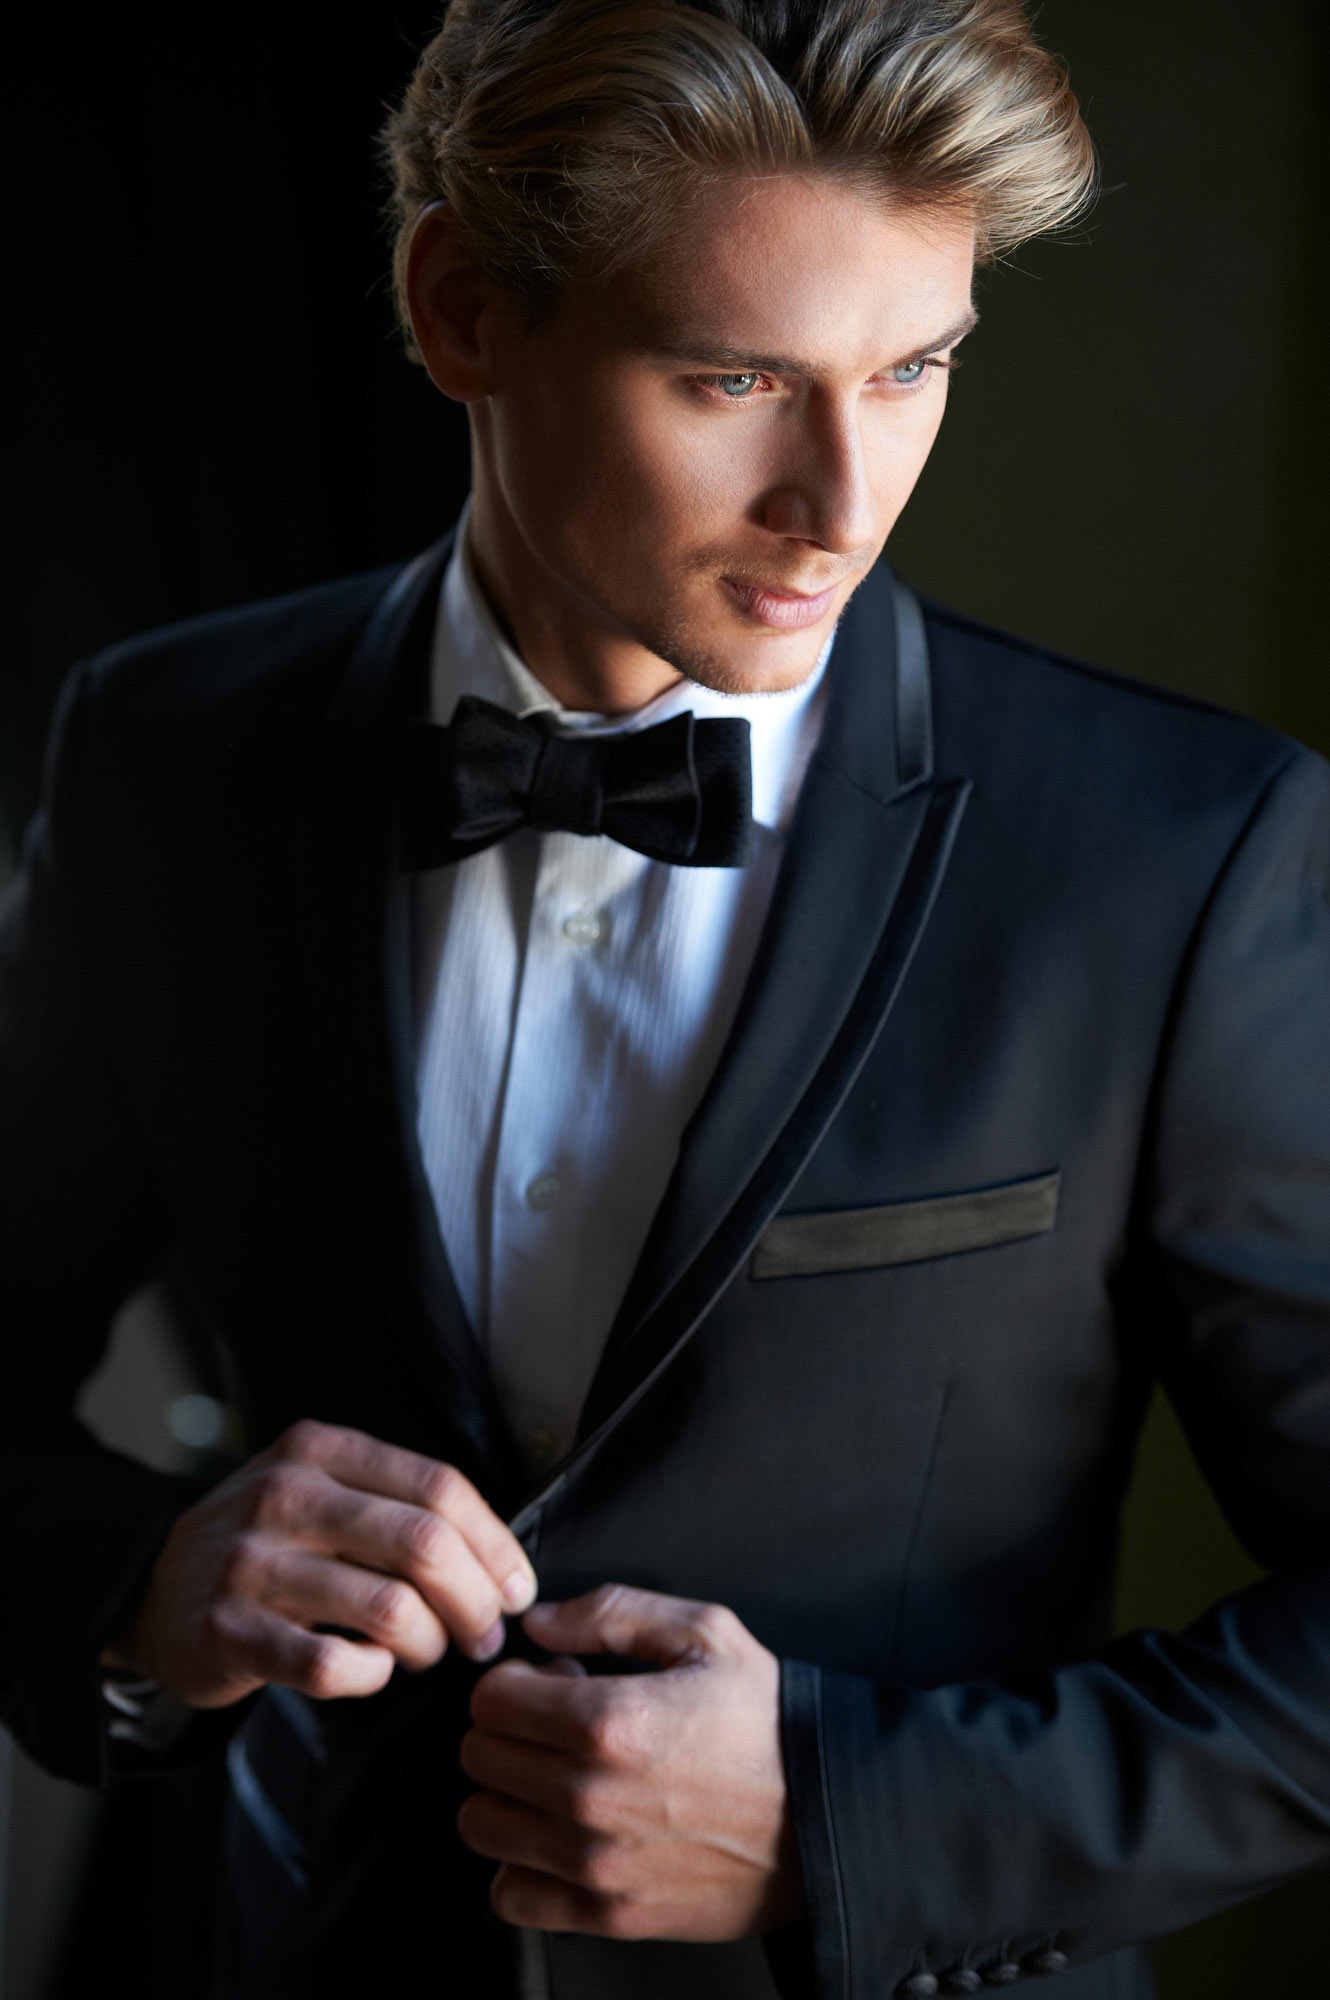 blonde-groom-wearing-black-tuxedo-with-silk-lapels-best-wedding-photos-jerry-ghionis